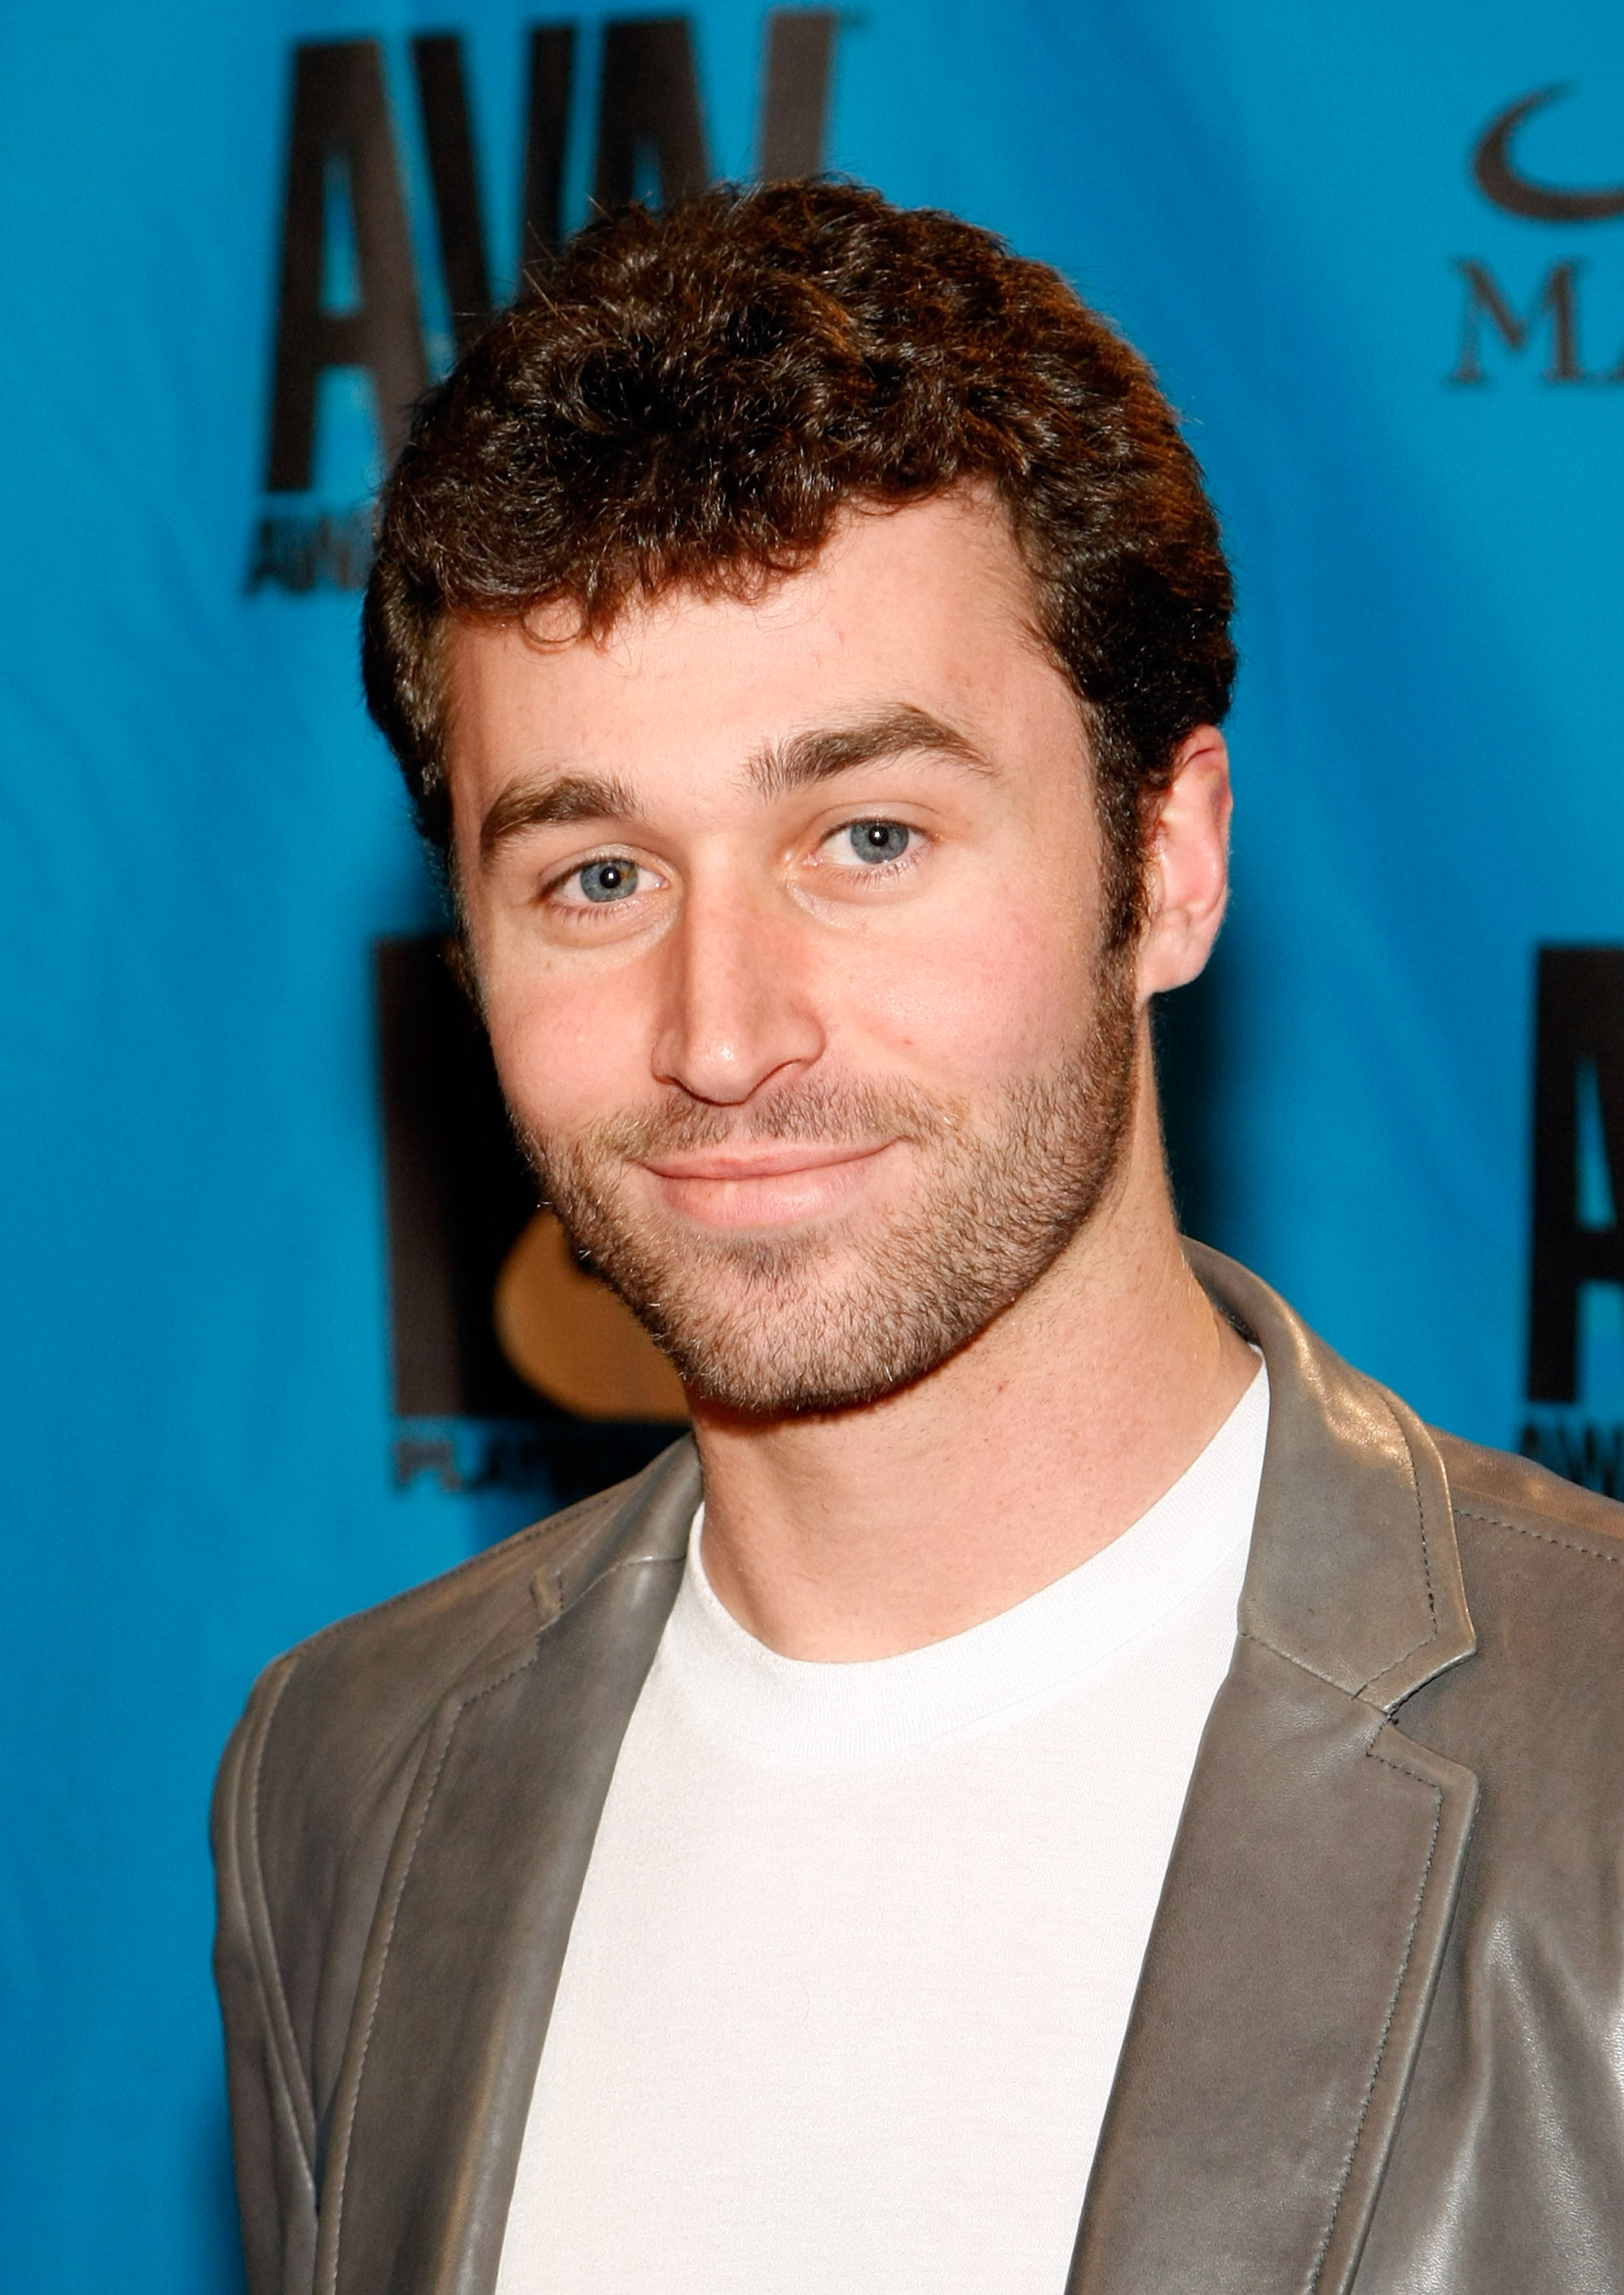 james deen big dick